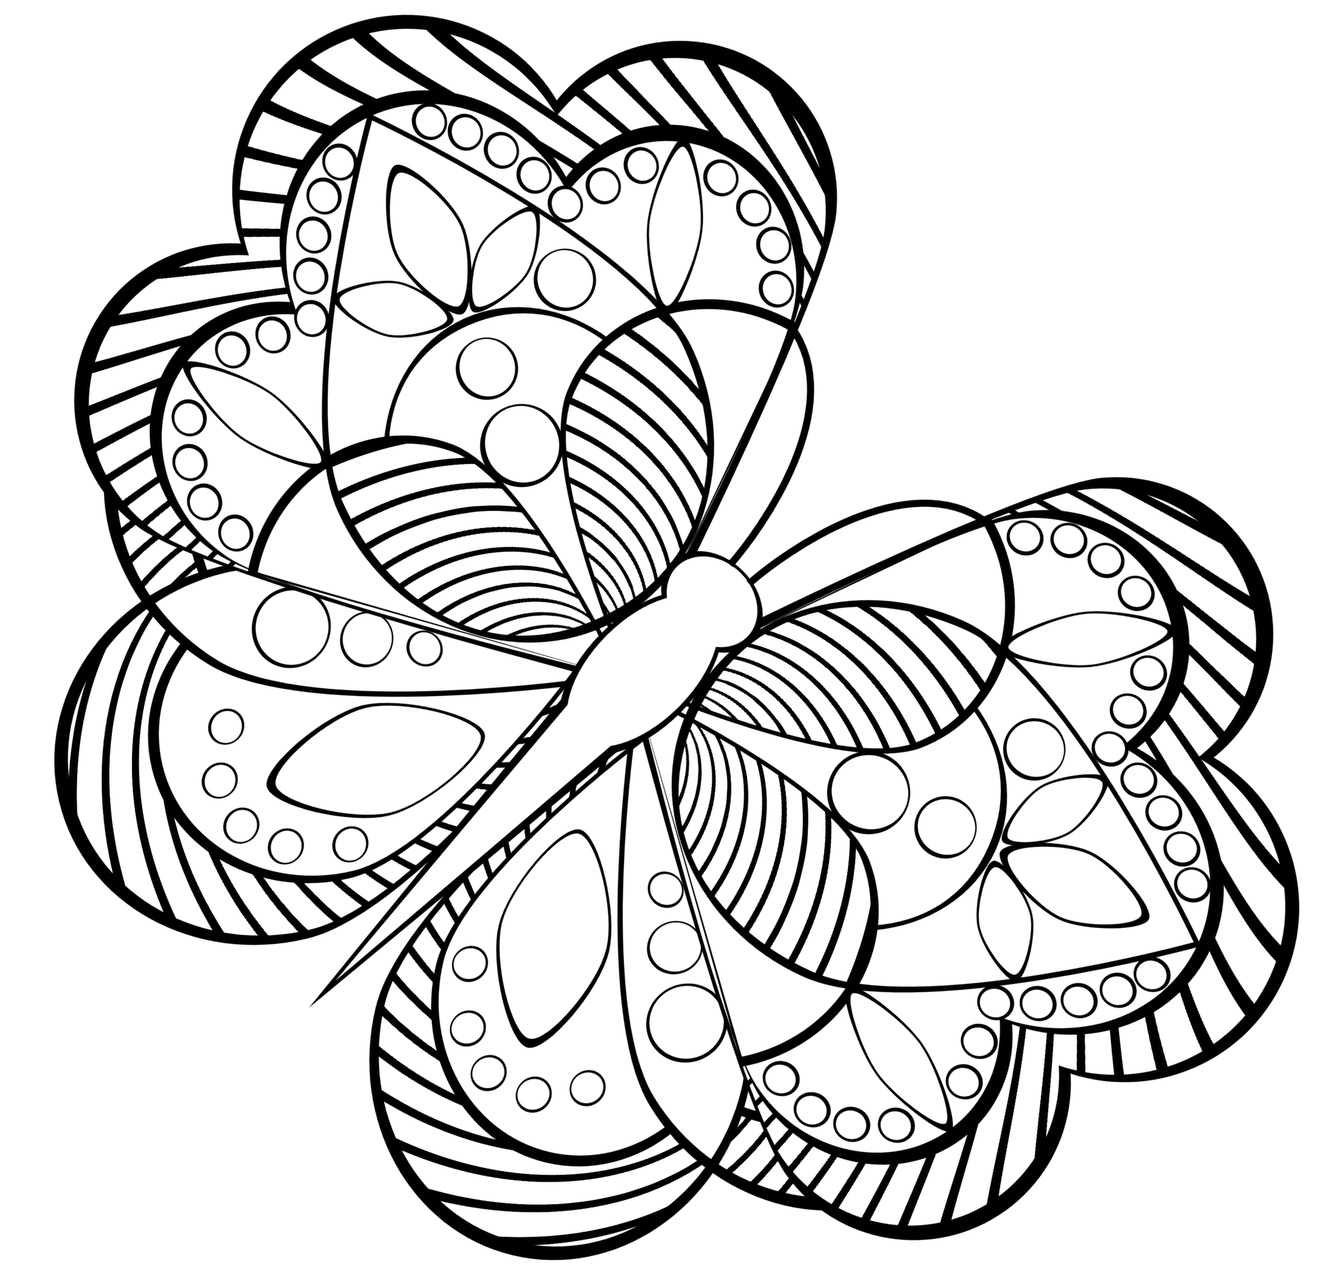 free printable advanced coloring pages high skill image 52 - Advanced Coloring Pages Printable